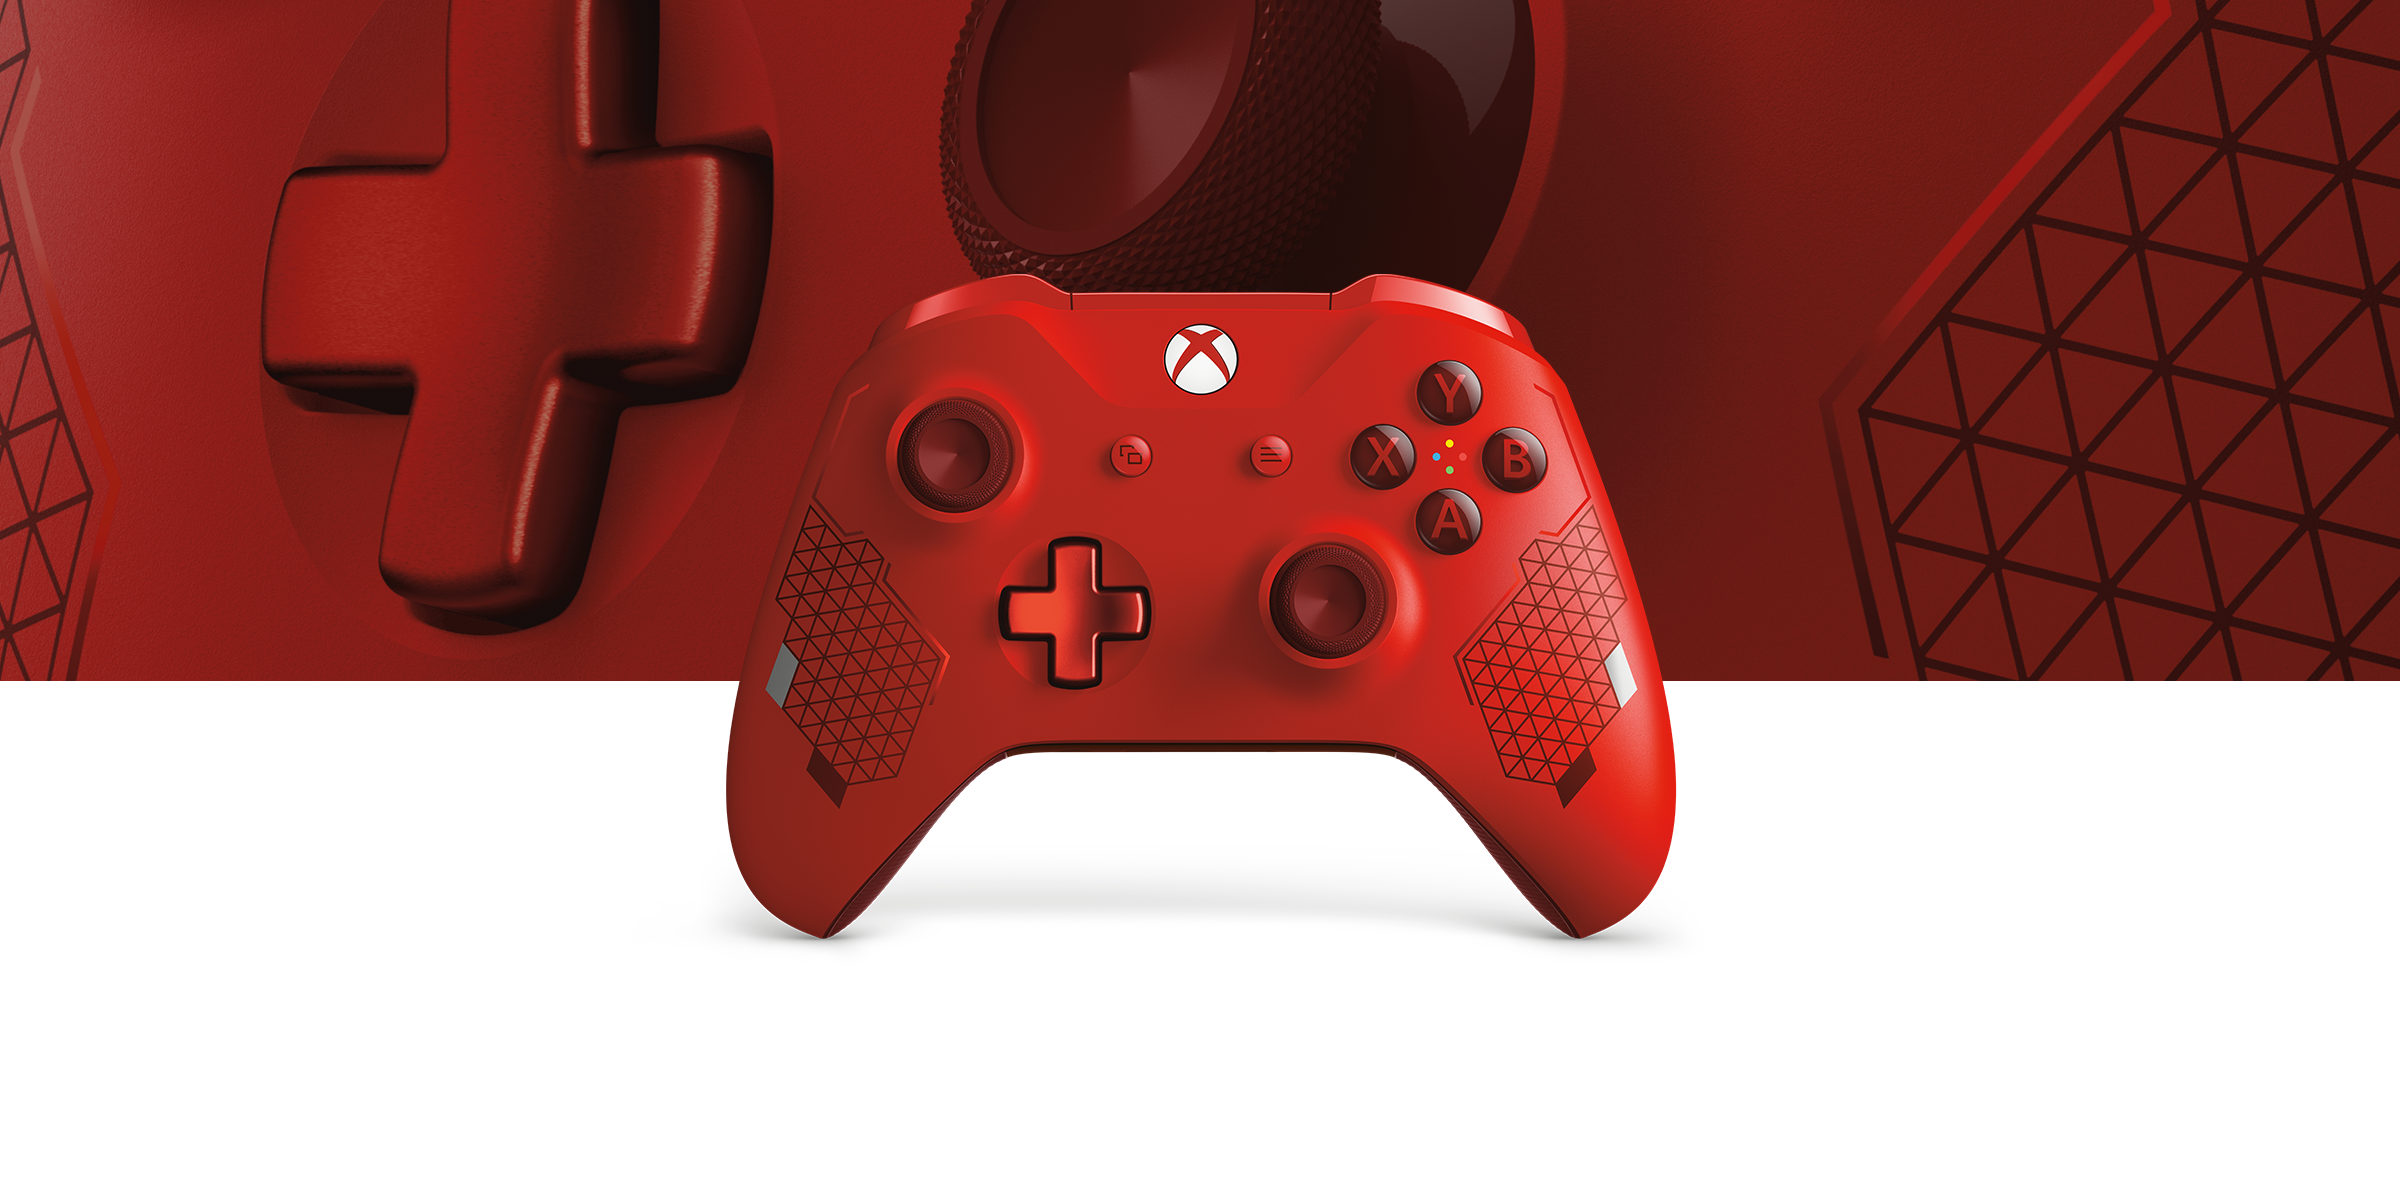 Xbox Wireless Controller Sport Red Special Edition with a close up view of the controller in the background